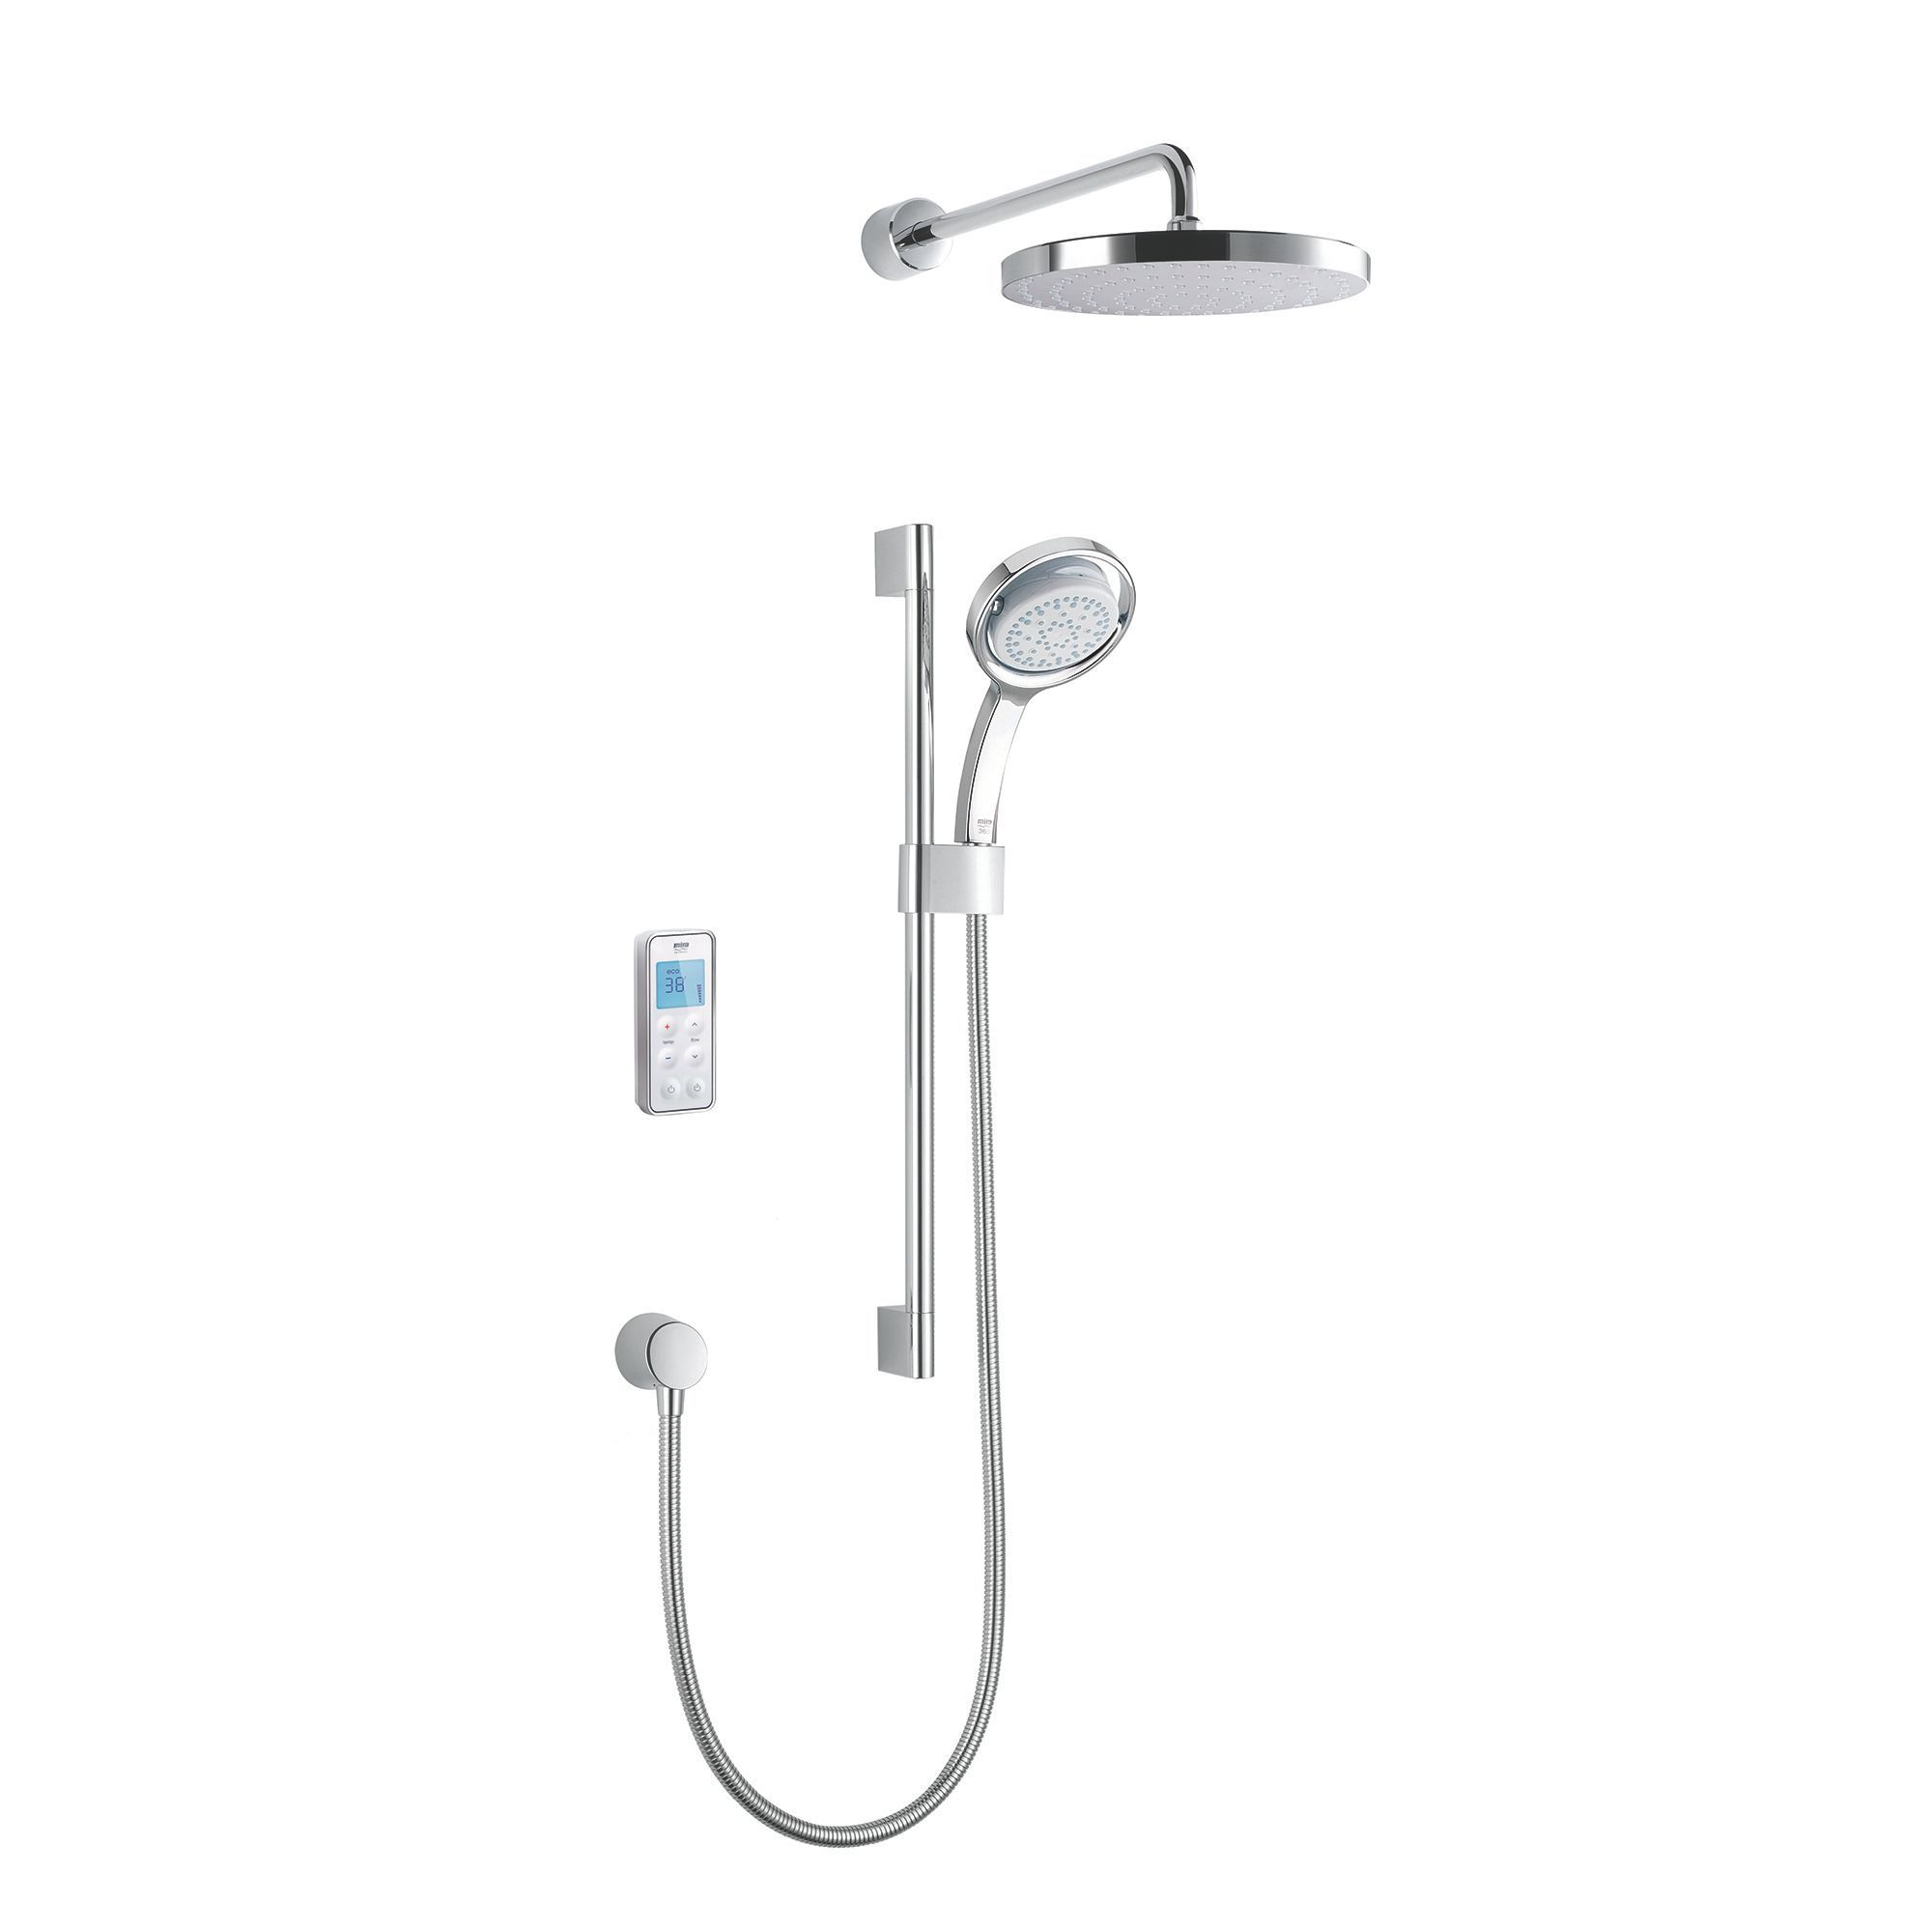 Mira Vision High Pressure Rear Fed White & Chrome Effect Thermostatic Digital Mixer Shower